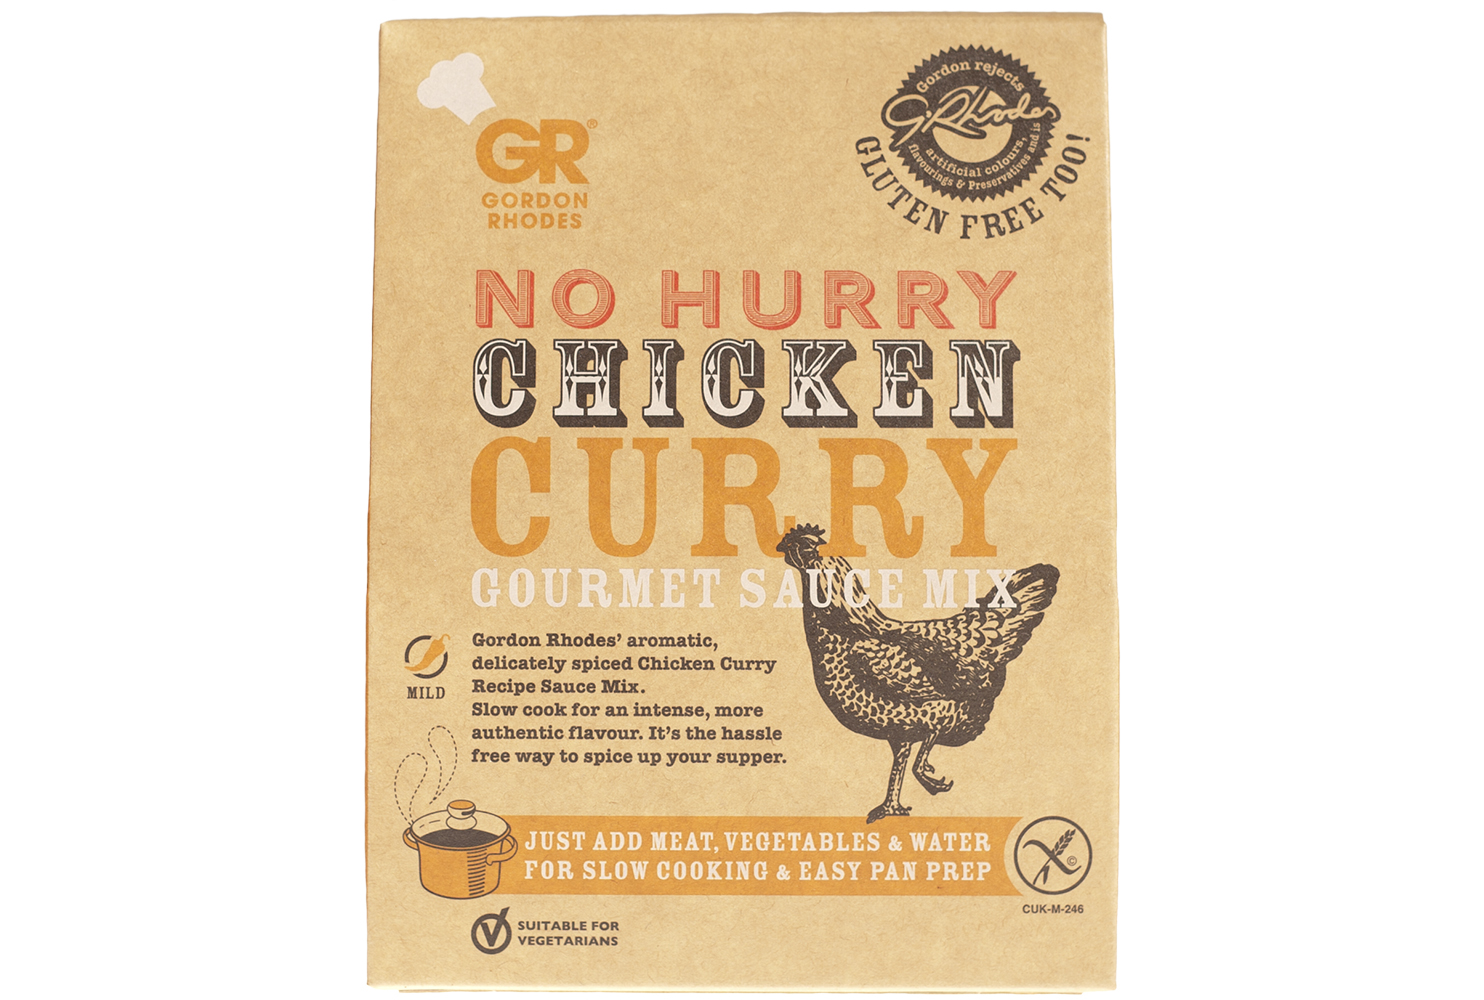 GR CURRY SAUCE MIX SRP